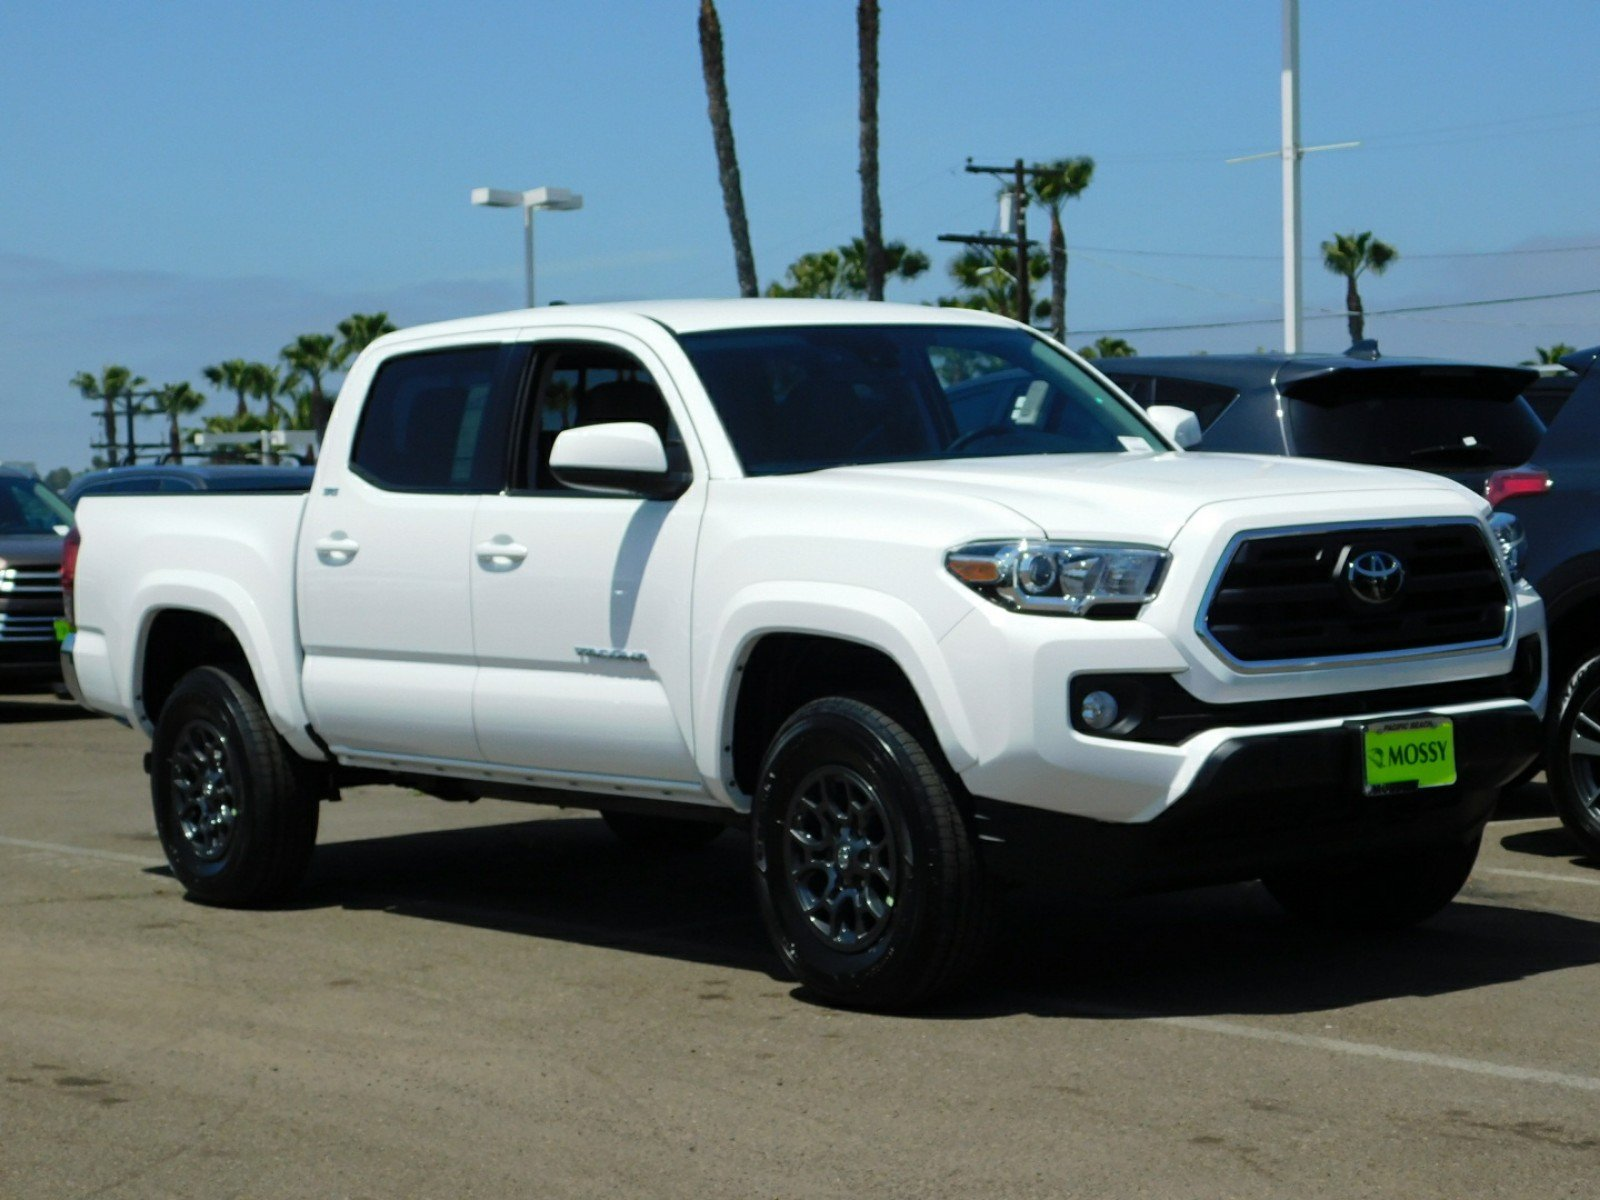 resale the trucks rodeo jimgorzelany will truck tacoma highest cars new texas toyota and sites values return that